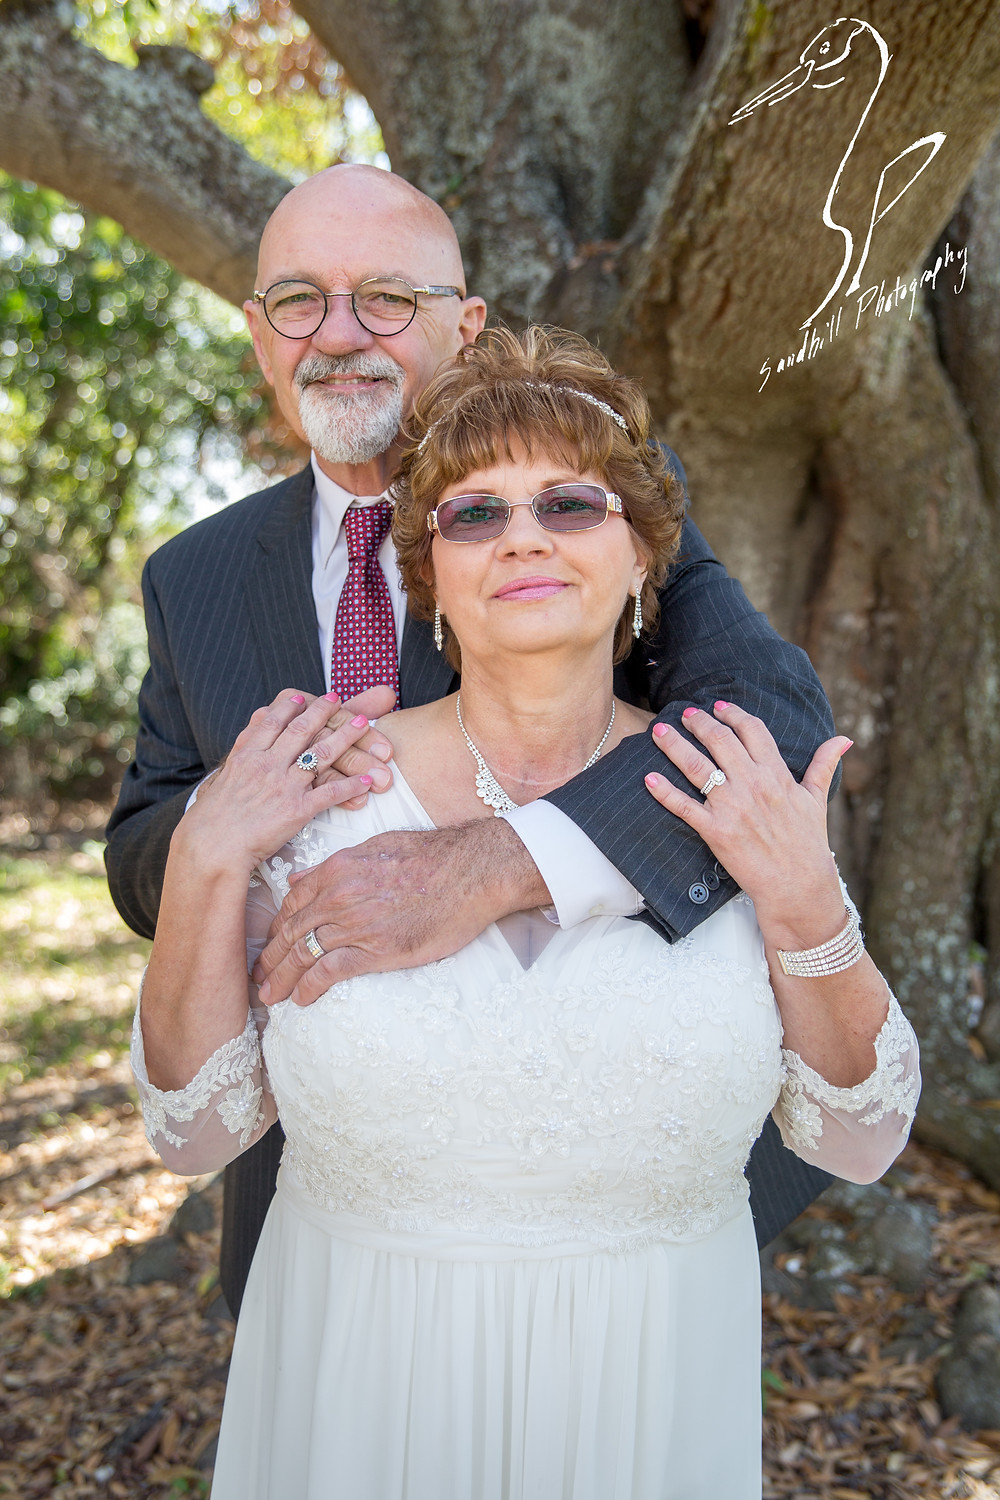 Anna Maria Oyster Bar Wedding Photography Bride and Groom Posed Photo Tree